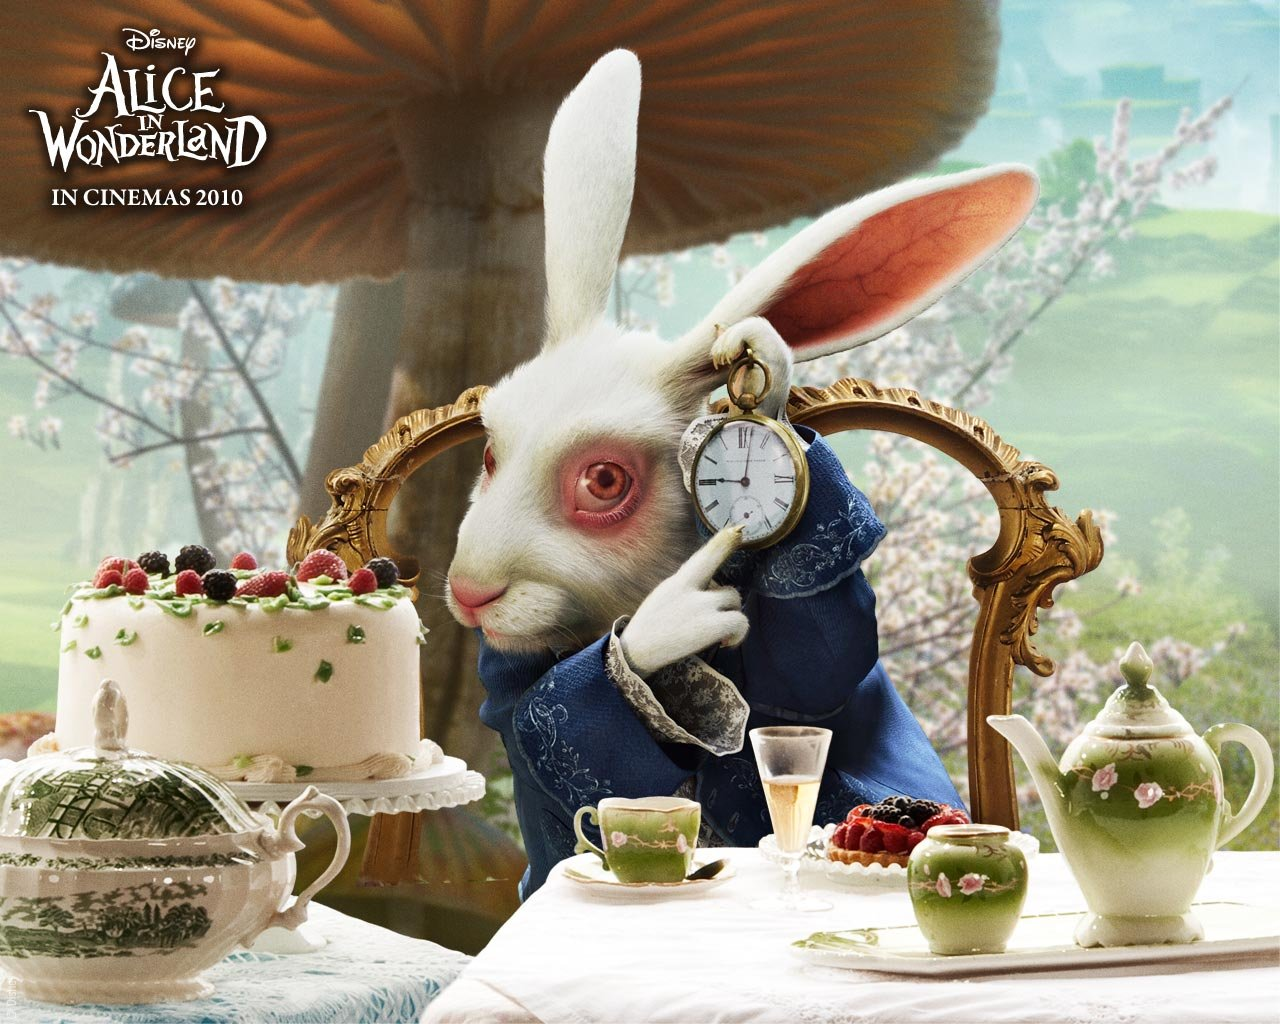 alice in wonderland hd multi monitor wallpapers - Alice in Wonderland HD Multi Monitor HD Wallpaper